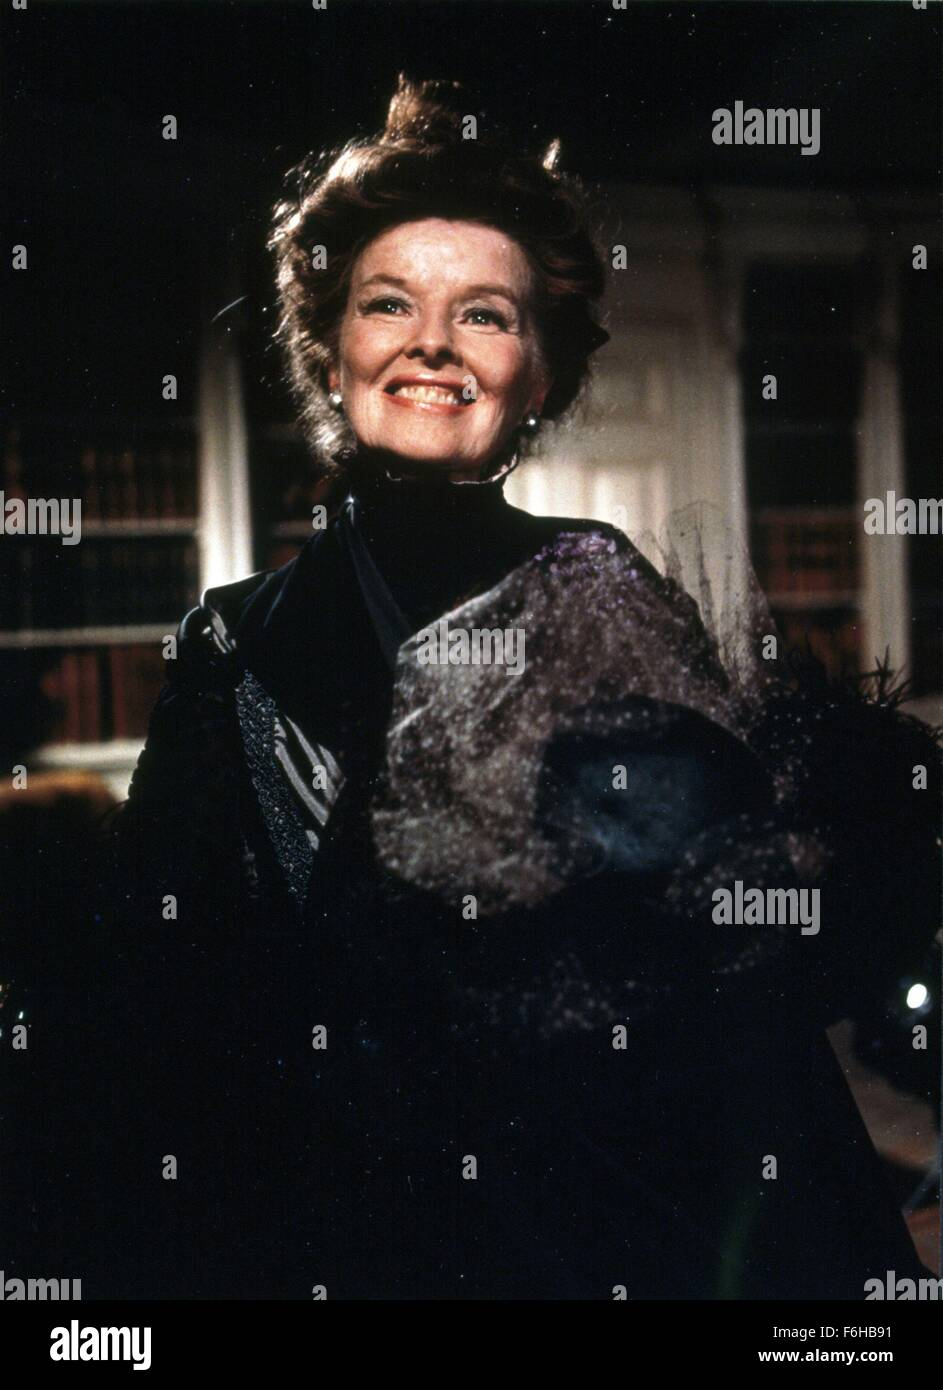 1975, Film Title: LOVE AMONG THE RUINS, Director: GEORGE CUKOR, Pictured: KATHARINE HEPBURN, WIDOW, OUTFIT - BLACK, - Stock Image